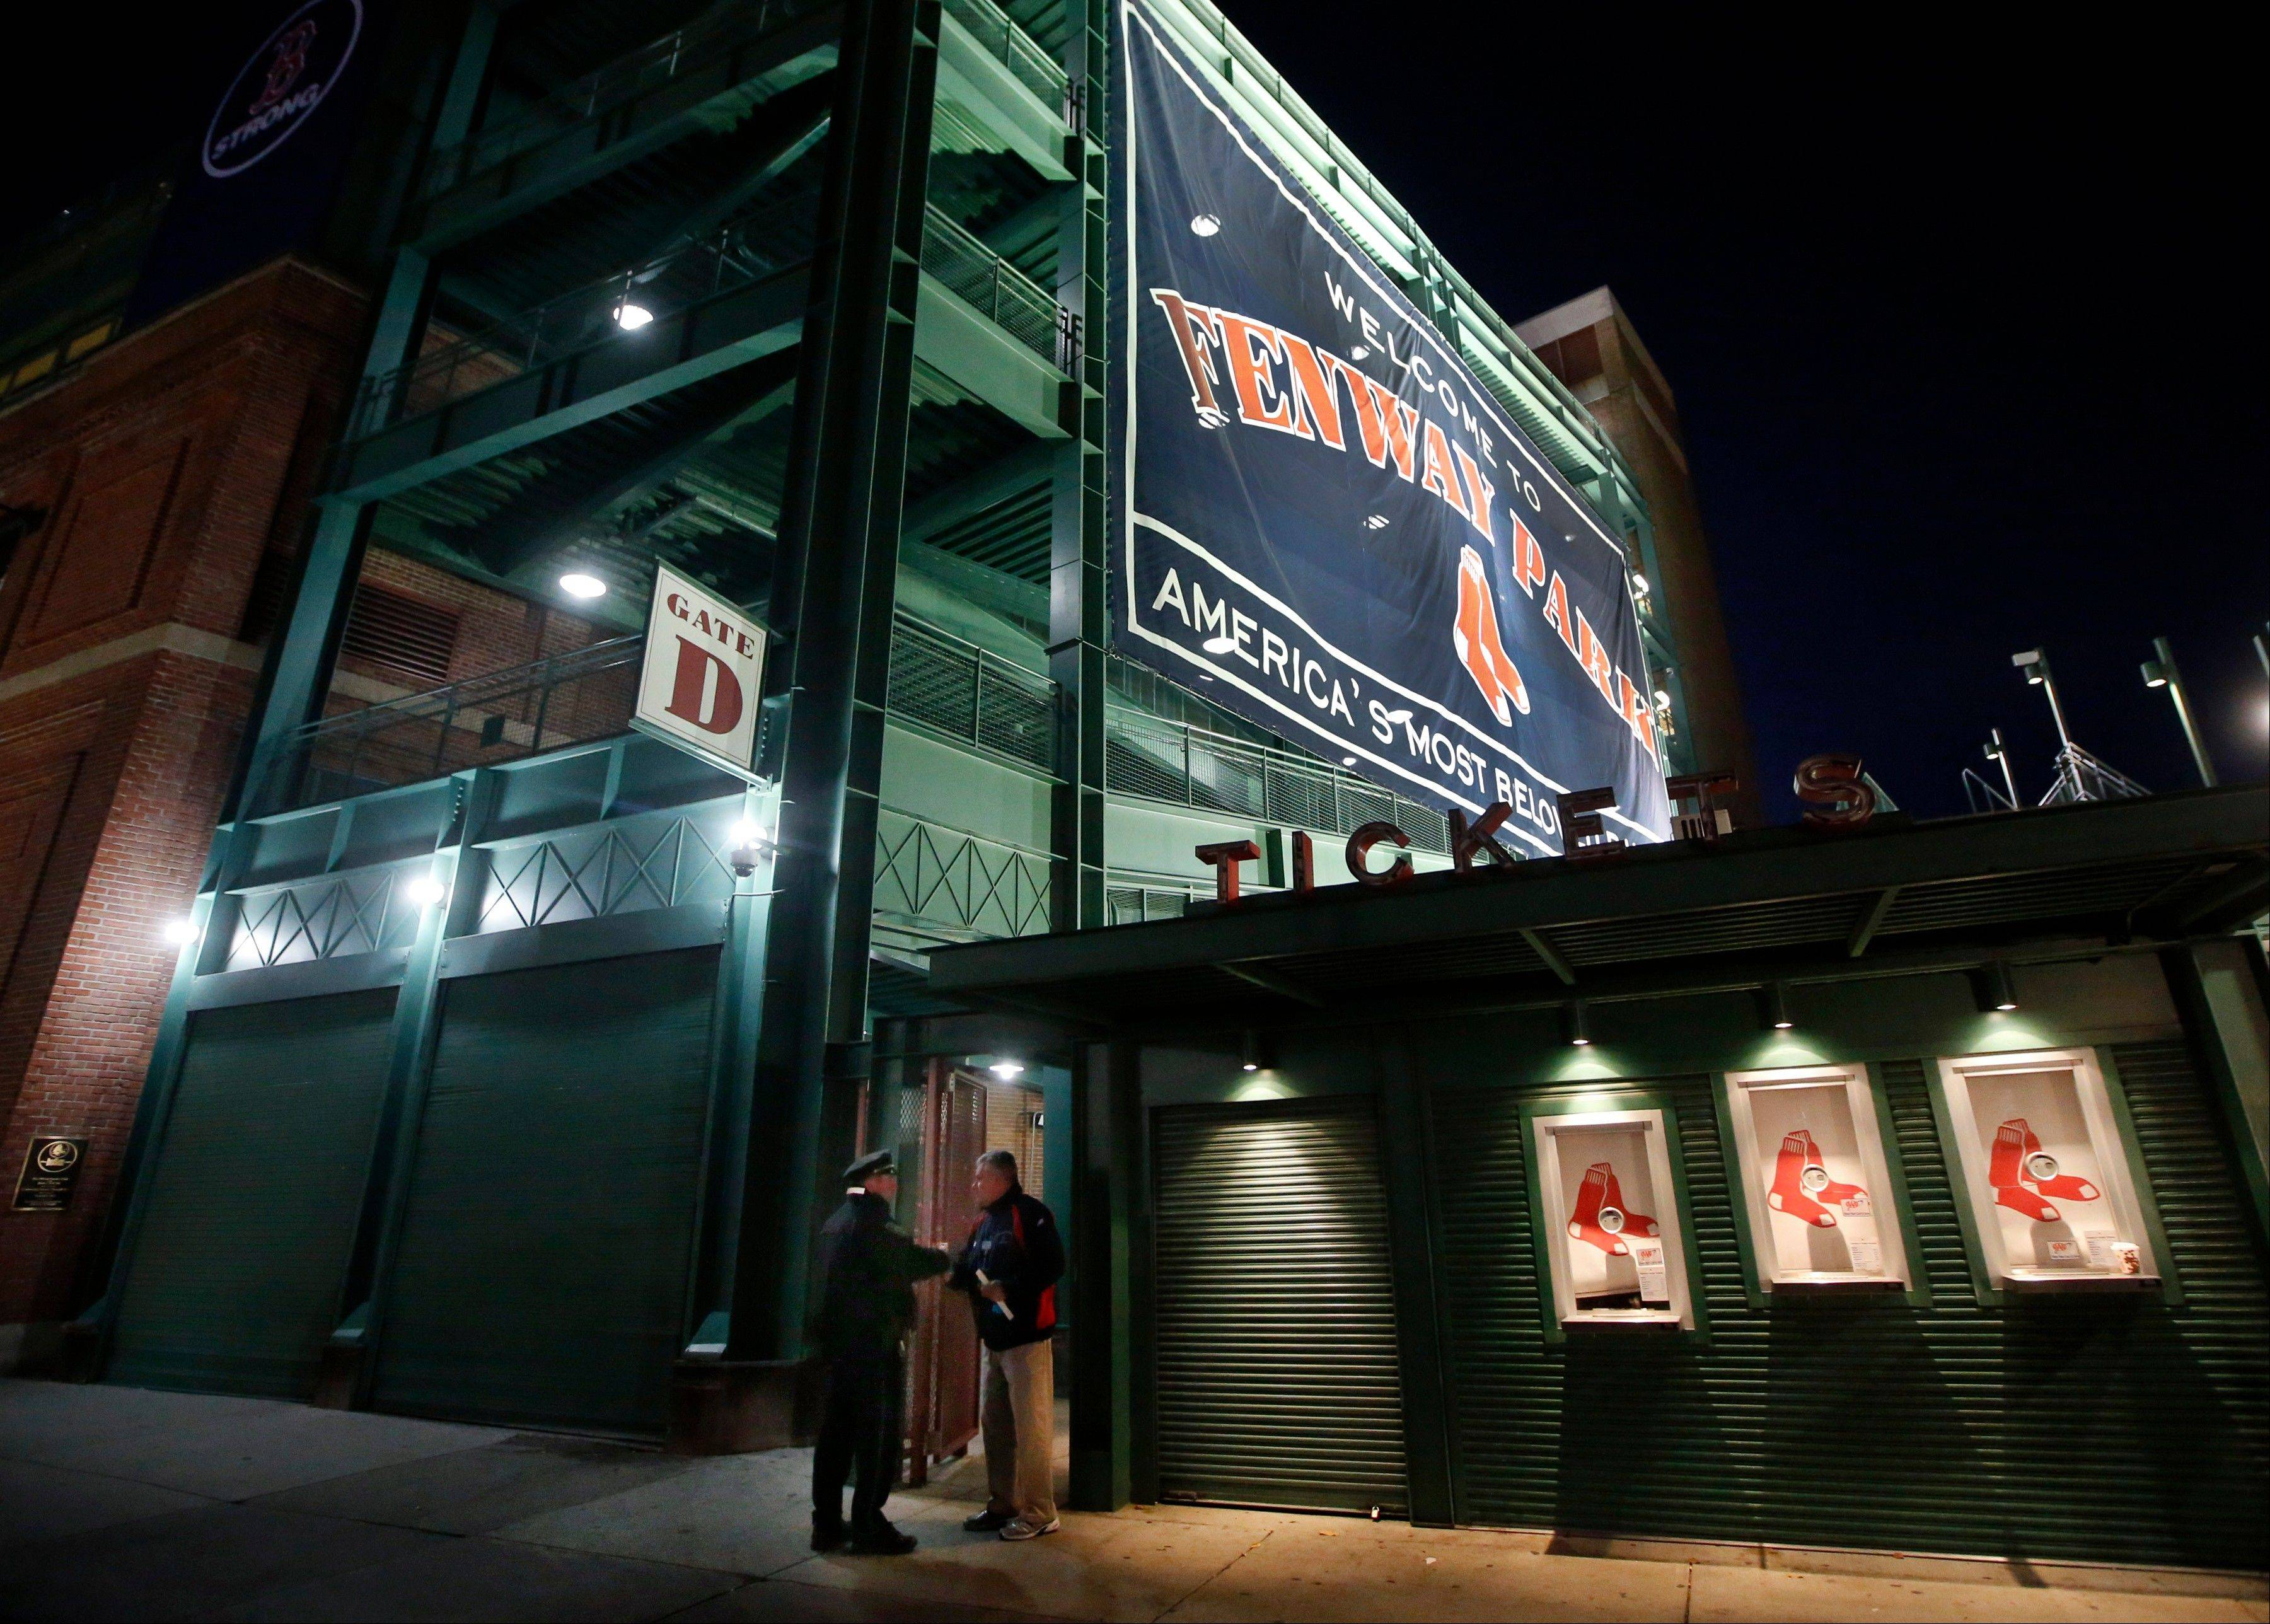 Ahead of the St. Louis Cardinals 3-2, the Red Sox have two chances to win the World Series title on the celebrated green grass at Fenway Park for the first time since 1918.